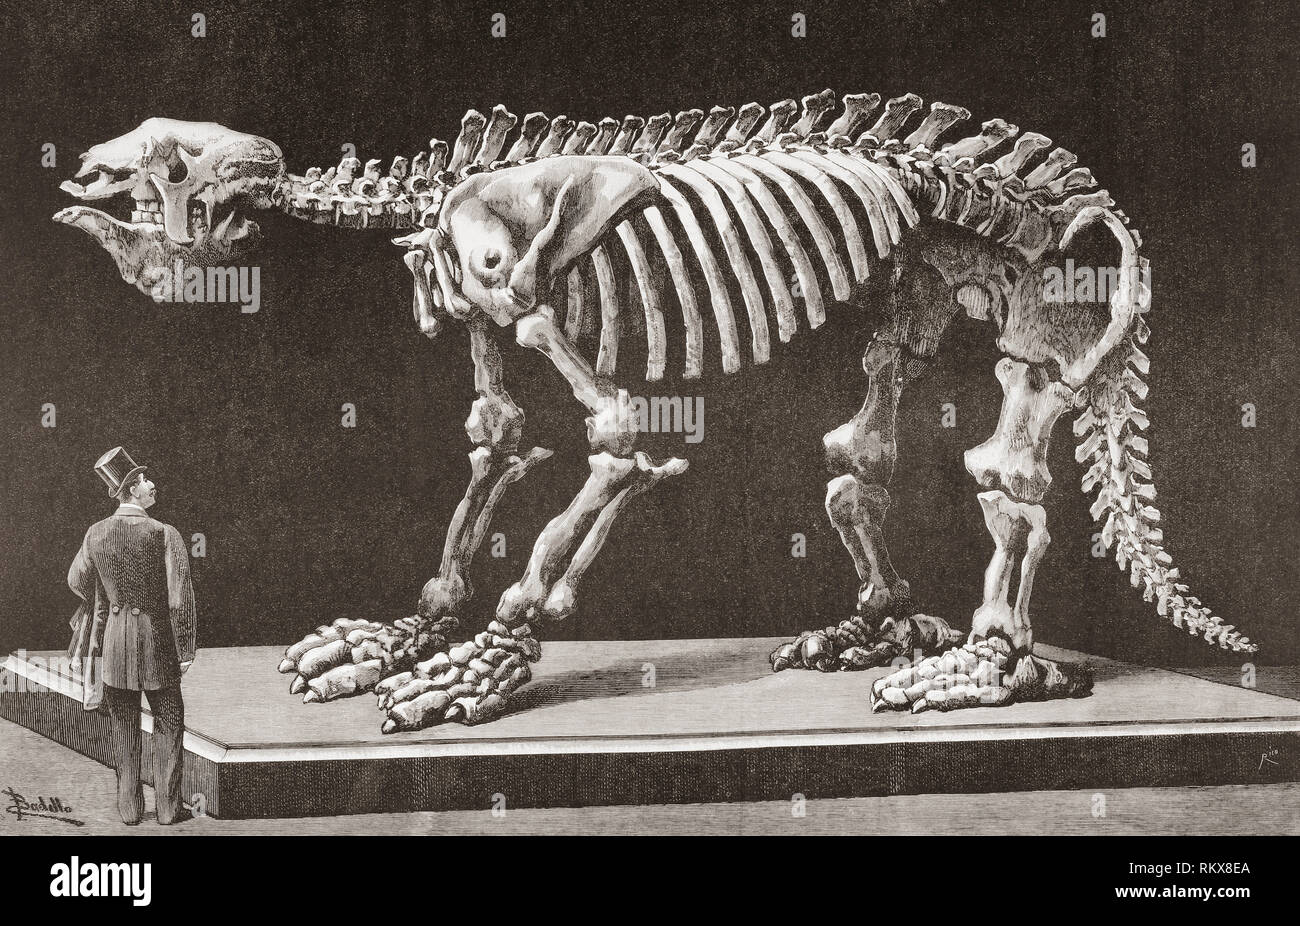 Megatherium americanum, Natural Sciences Museum, Madrid, seen here in the late 19th century.  The first Megatherium discovered in Argentina in 1788 was the first prehistoric animal skeleton mounted in 1795.  From La Ilustracion Espanola y Americana, published 1892. Stock Photo